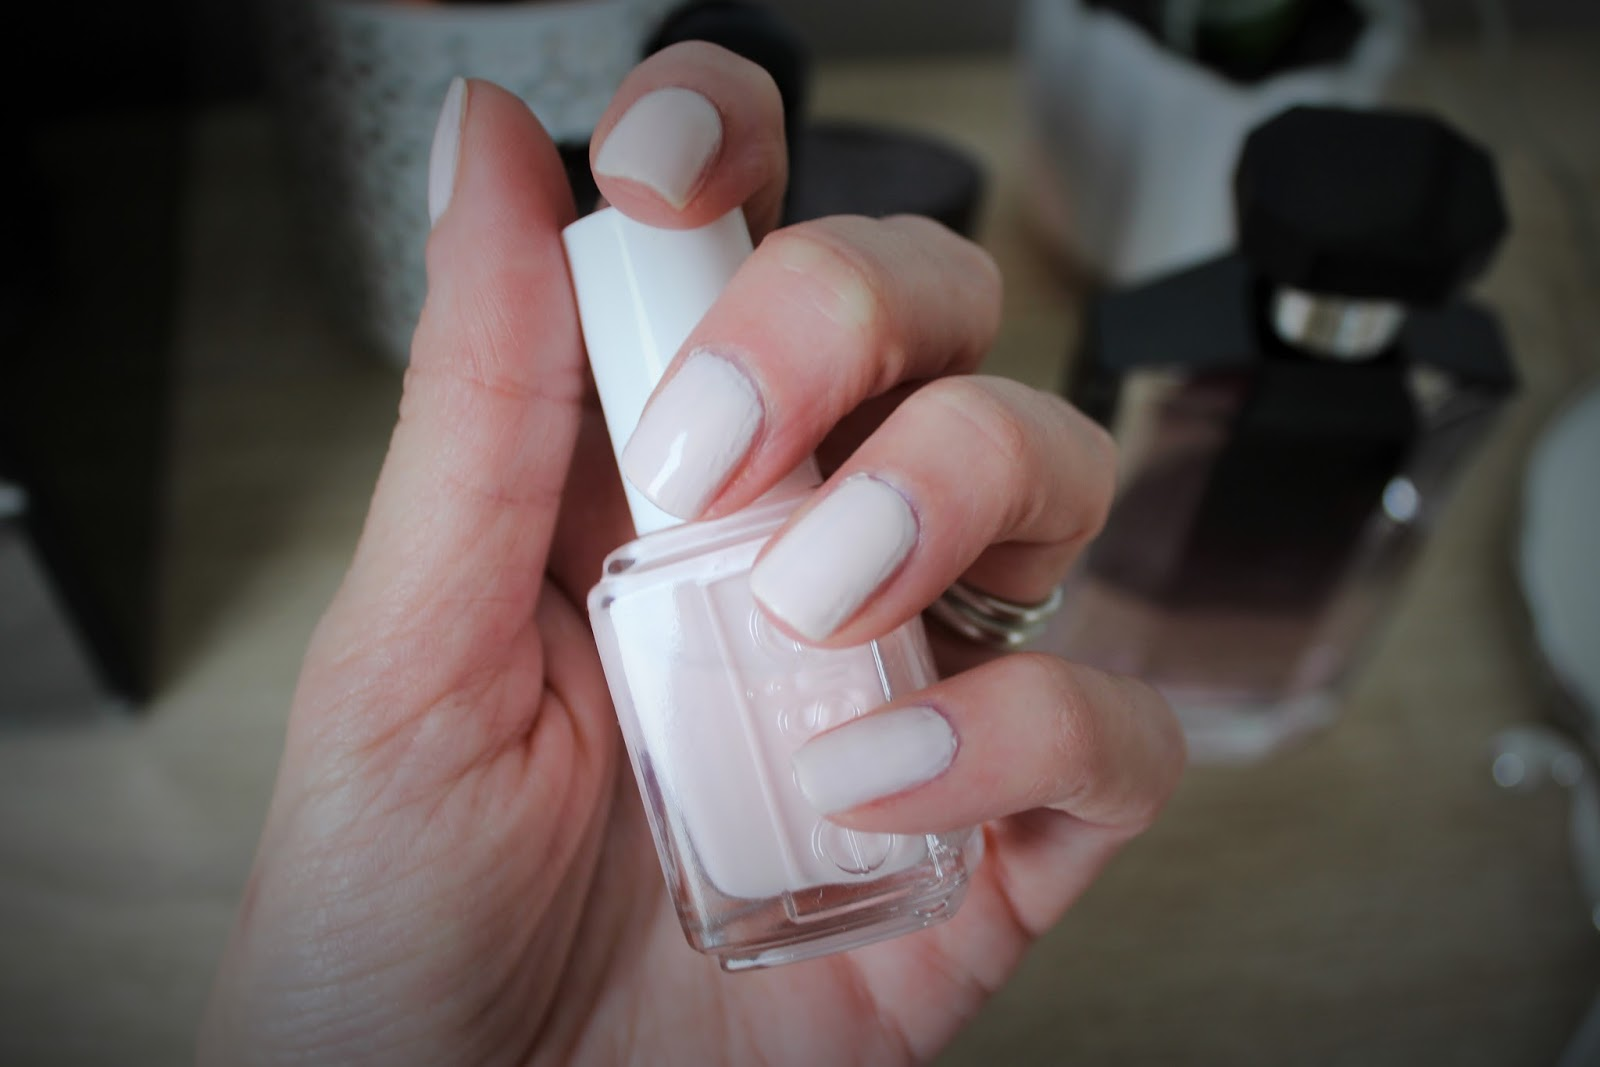 Nail Polish Review - Essie Peak Show - Winter 2015/2016 Collection